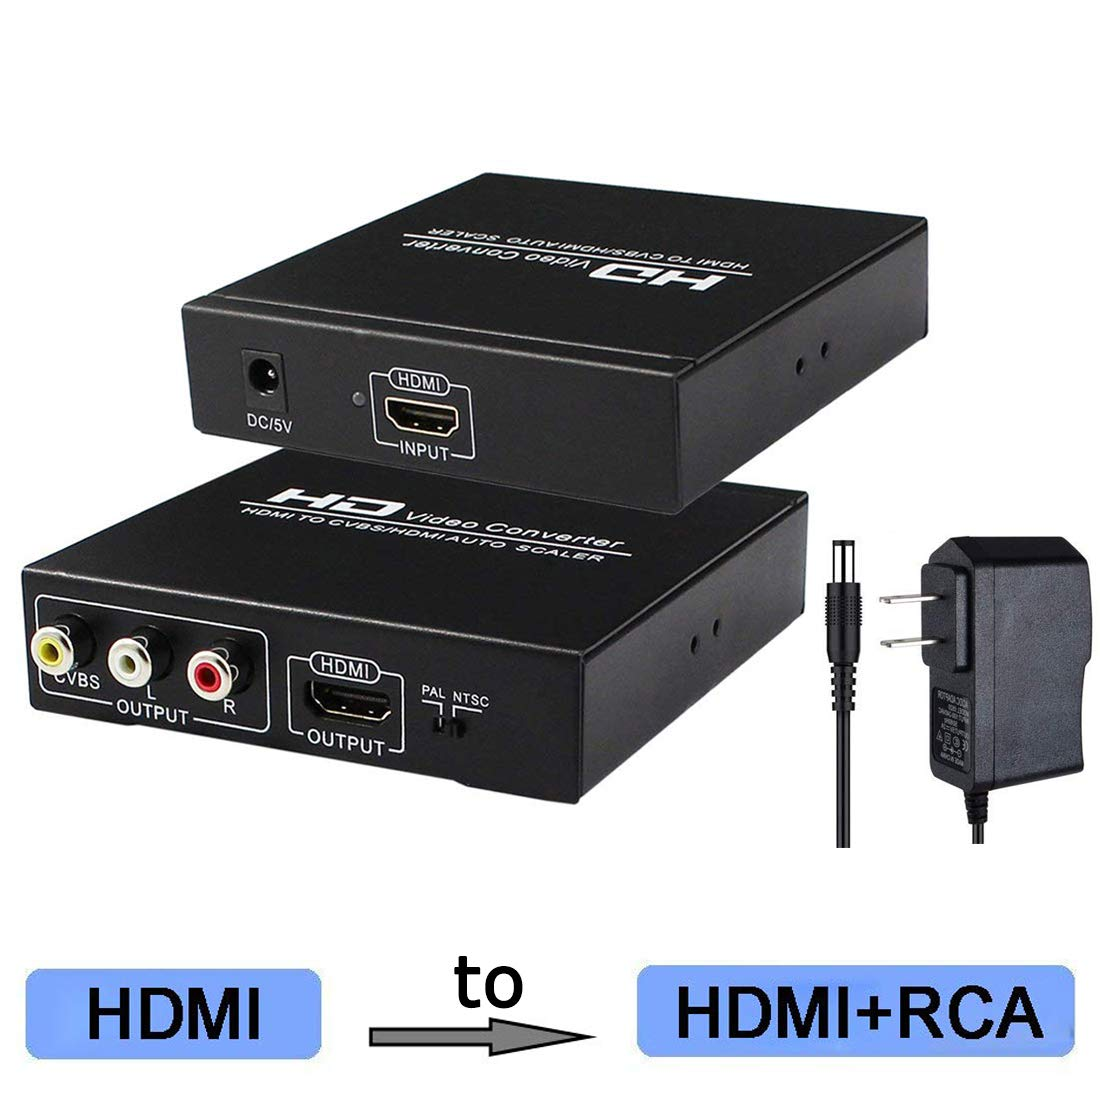 HDMI to RCA and HDMI Converter, HDMI to AV 3RCA and HDMI Adapter Support 1080P, PAL, NTSC for HD TV and Older TV (Black, Iron Shell) by Enbuer